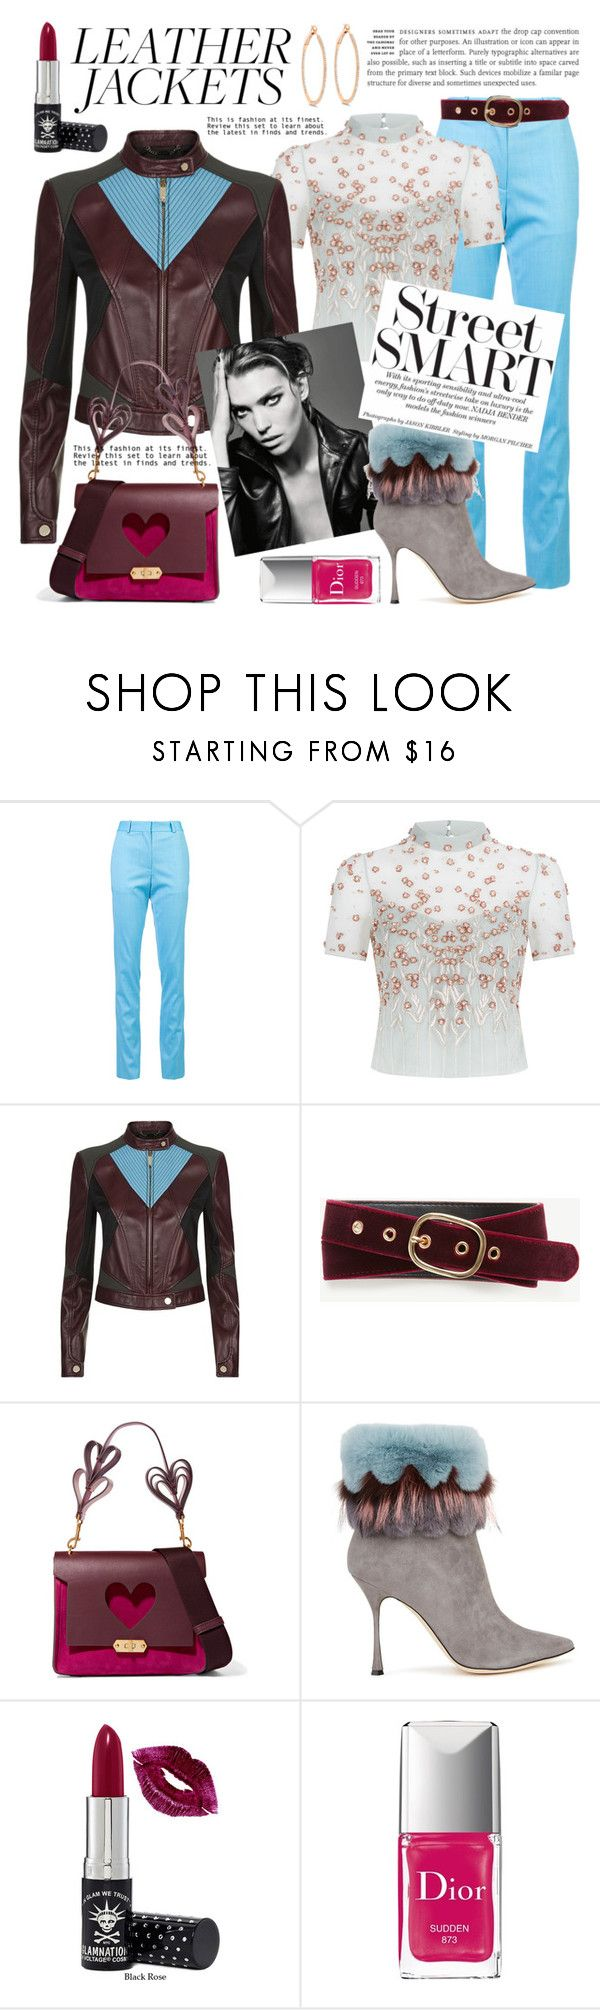 """Cool-Girl Style: Edgy and Feminine"" by sarina-noel ❤ liked on Polyvore featuring Victoria Beckham, Temperley London, Versace, Ann Taylor, Anya Hindmarch, Manolo Blahnik, Manic Panic NYC, Christian Dior, leatherjacket and fallfashion"